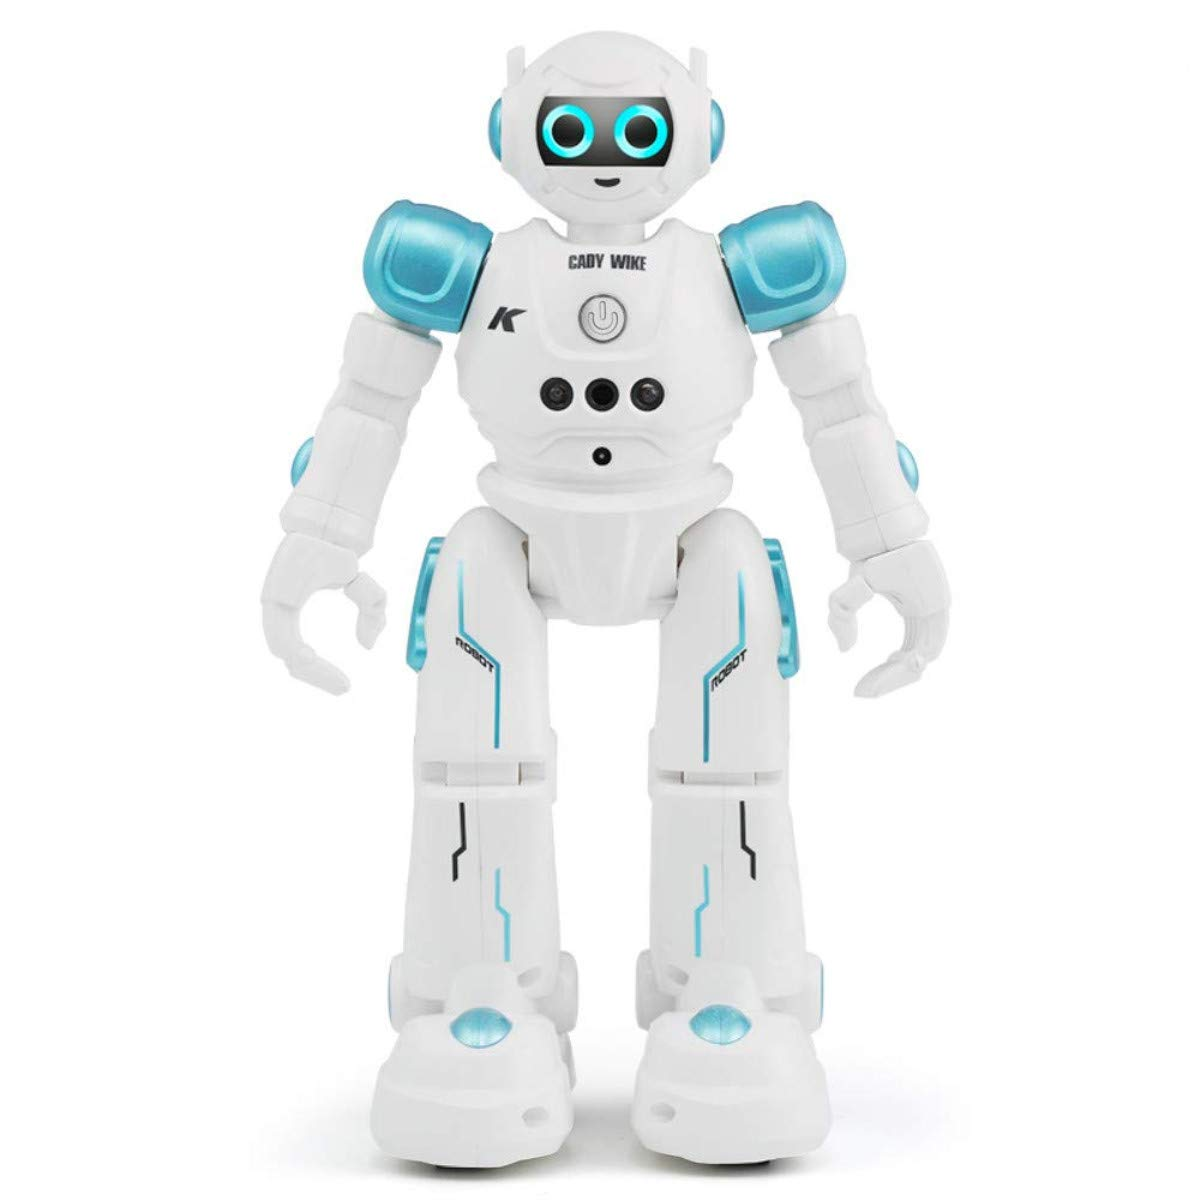 WEECOC Smart Robot Toys Gesture Control Remote Control Robot Kids Toys Birthday Can Singing Dancing Speaking Two Walking Models (Blue) by WEECOC (Image #2)